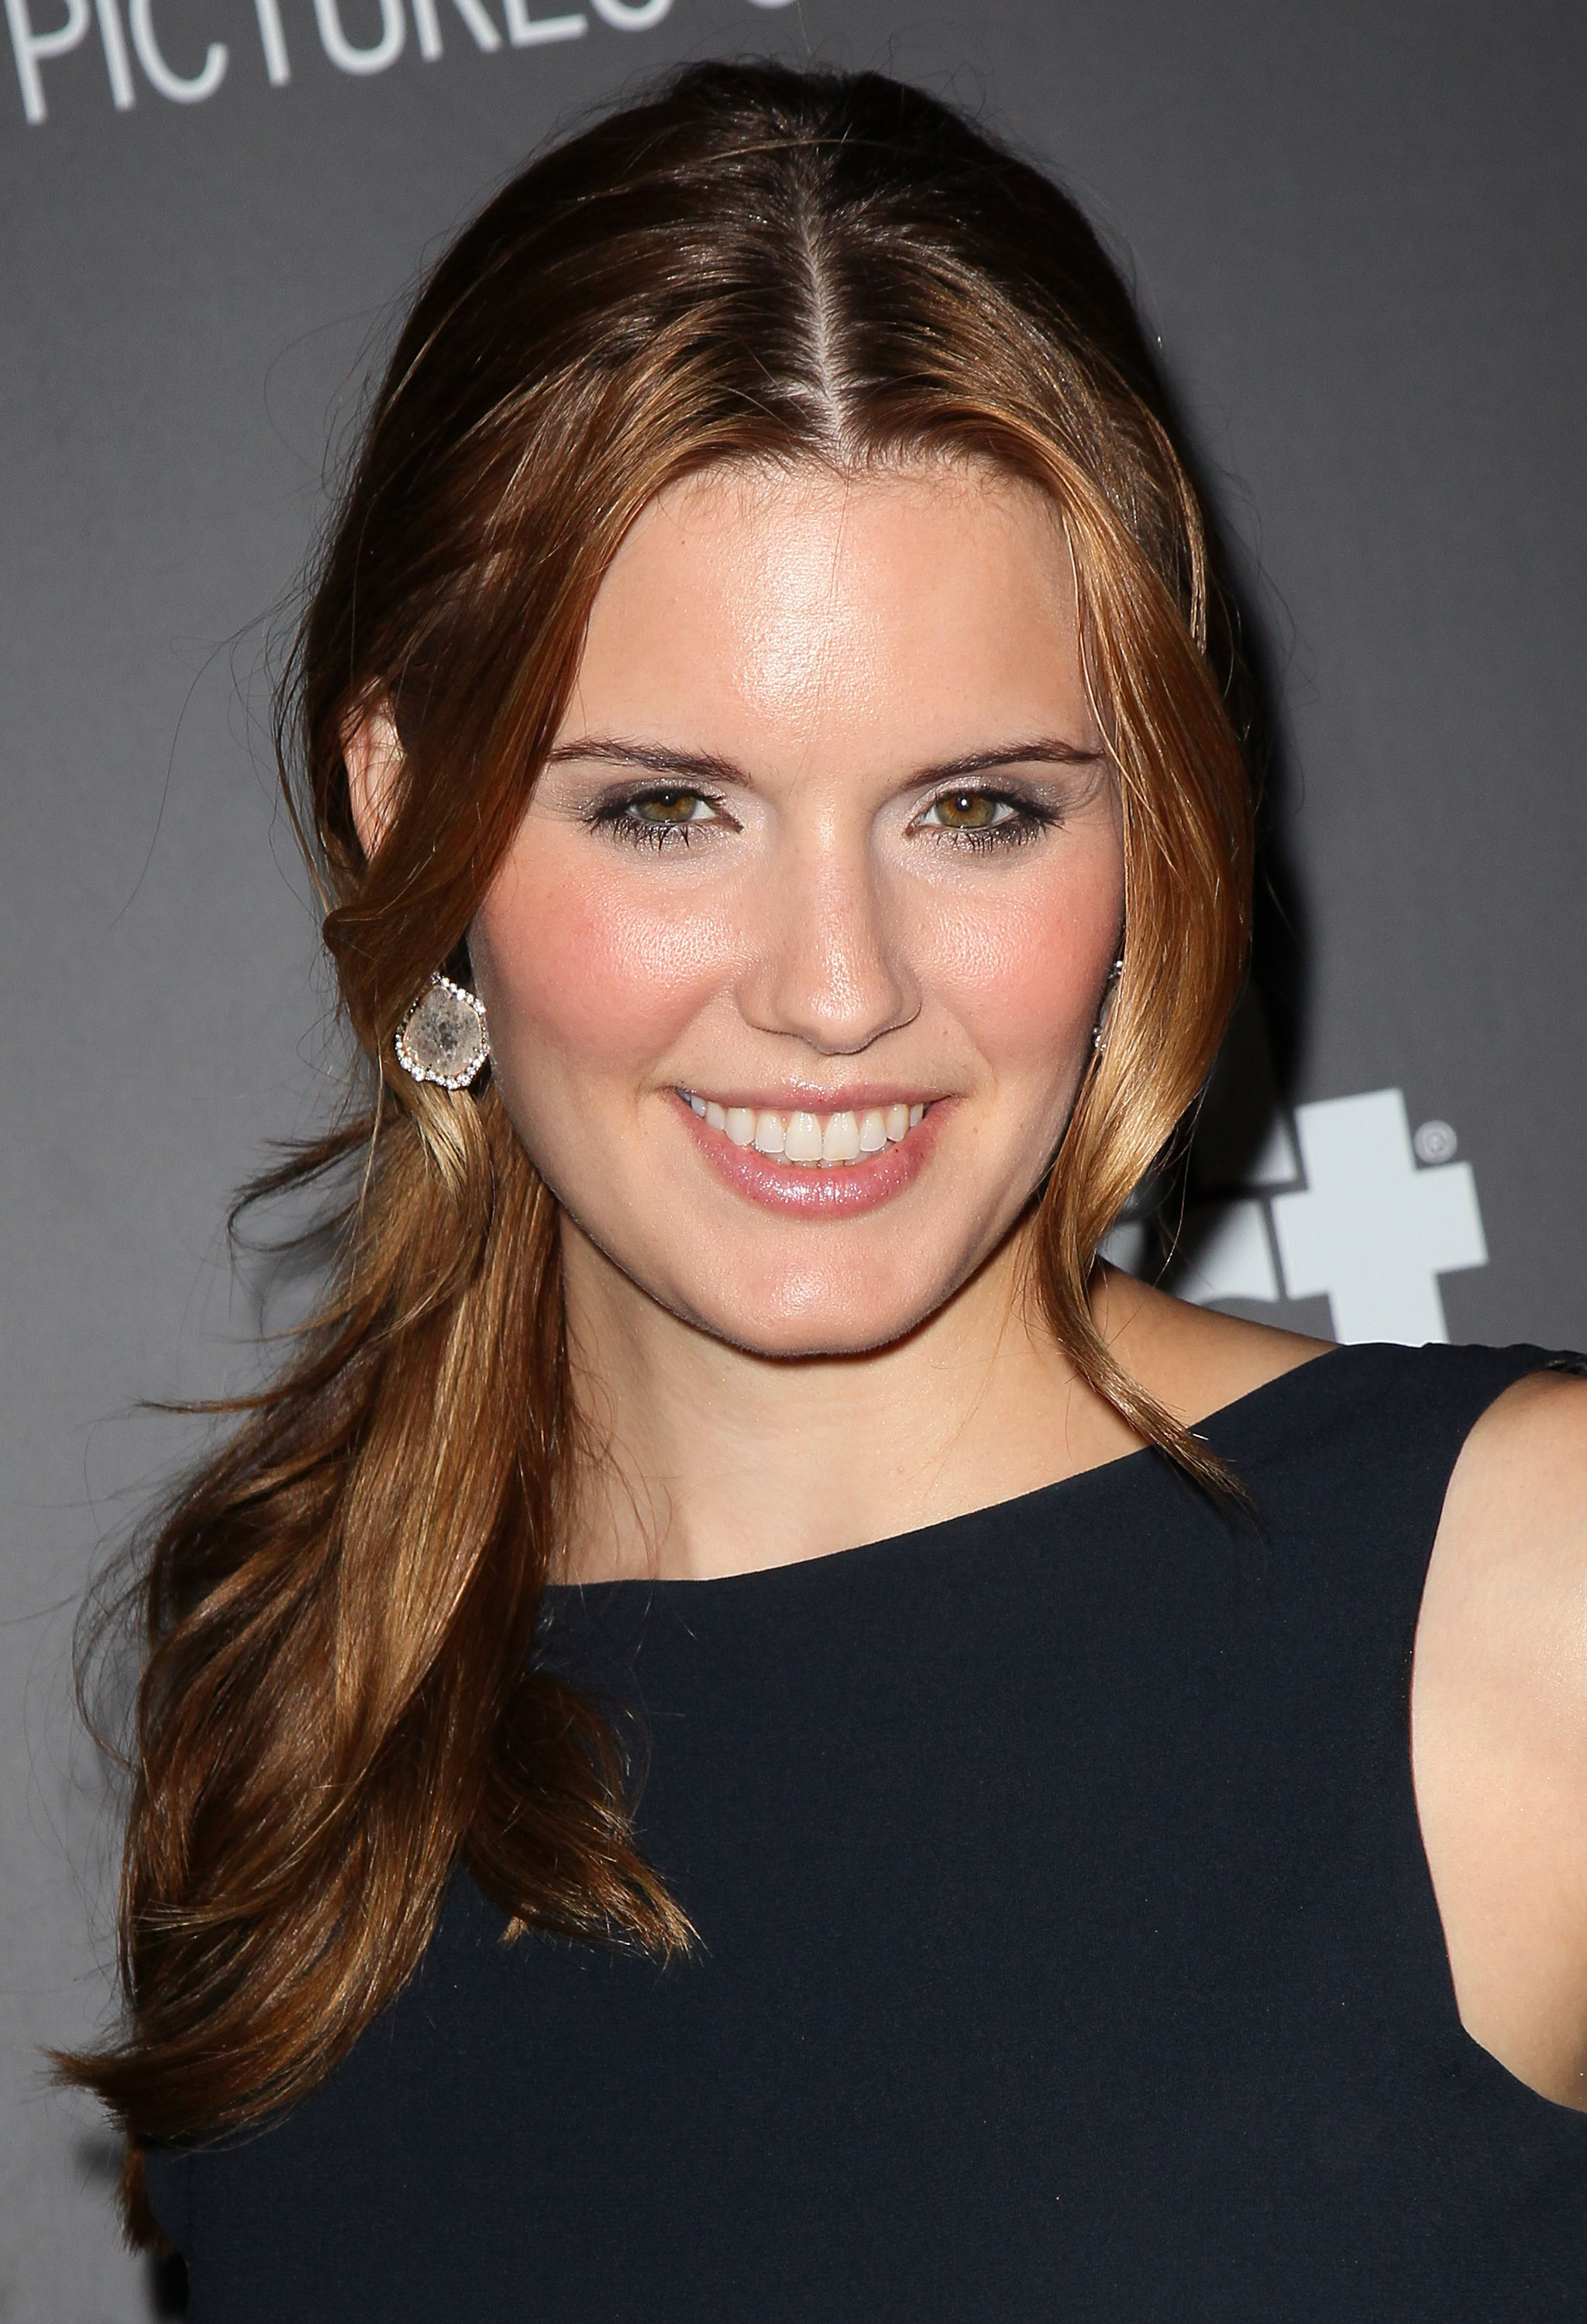 Maggie Grace biography